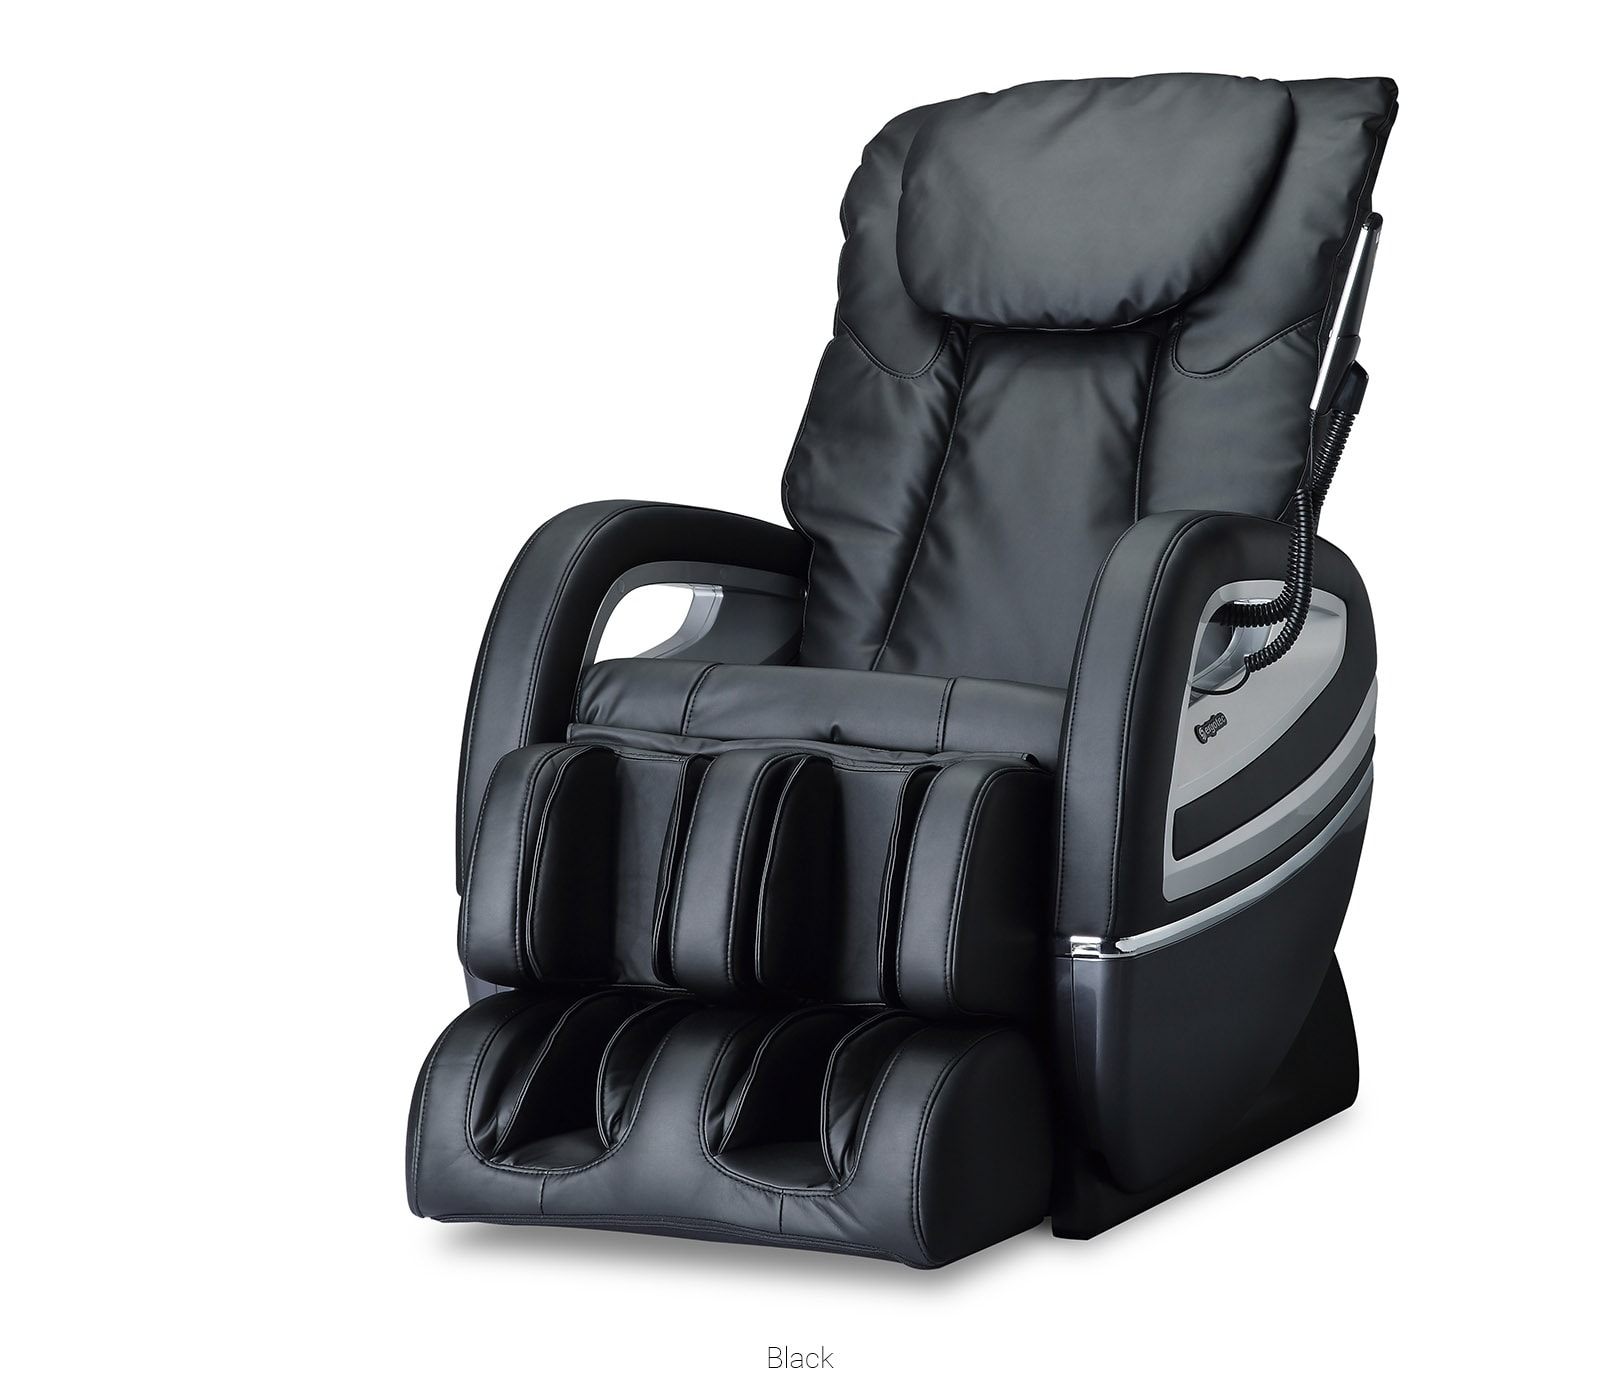 EC 360D Perfect massage chair with advanced technology